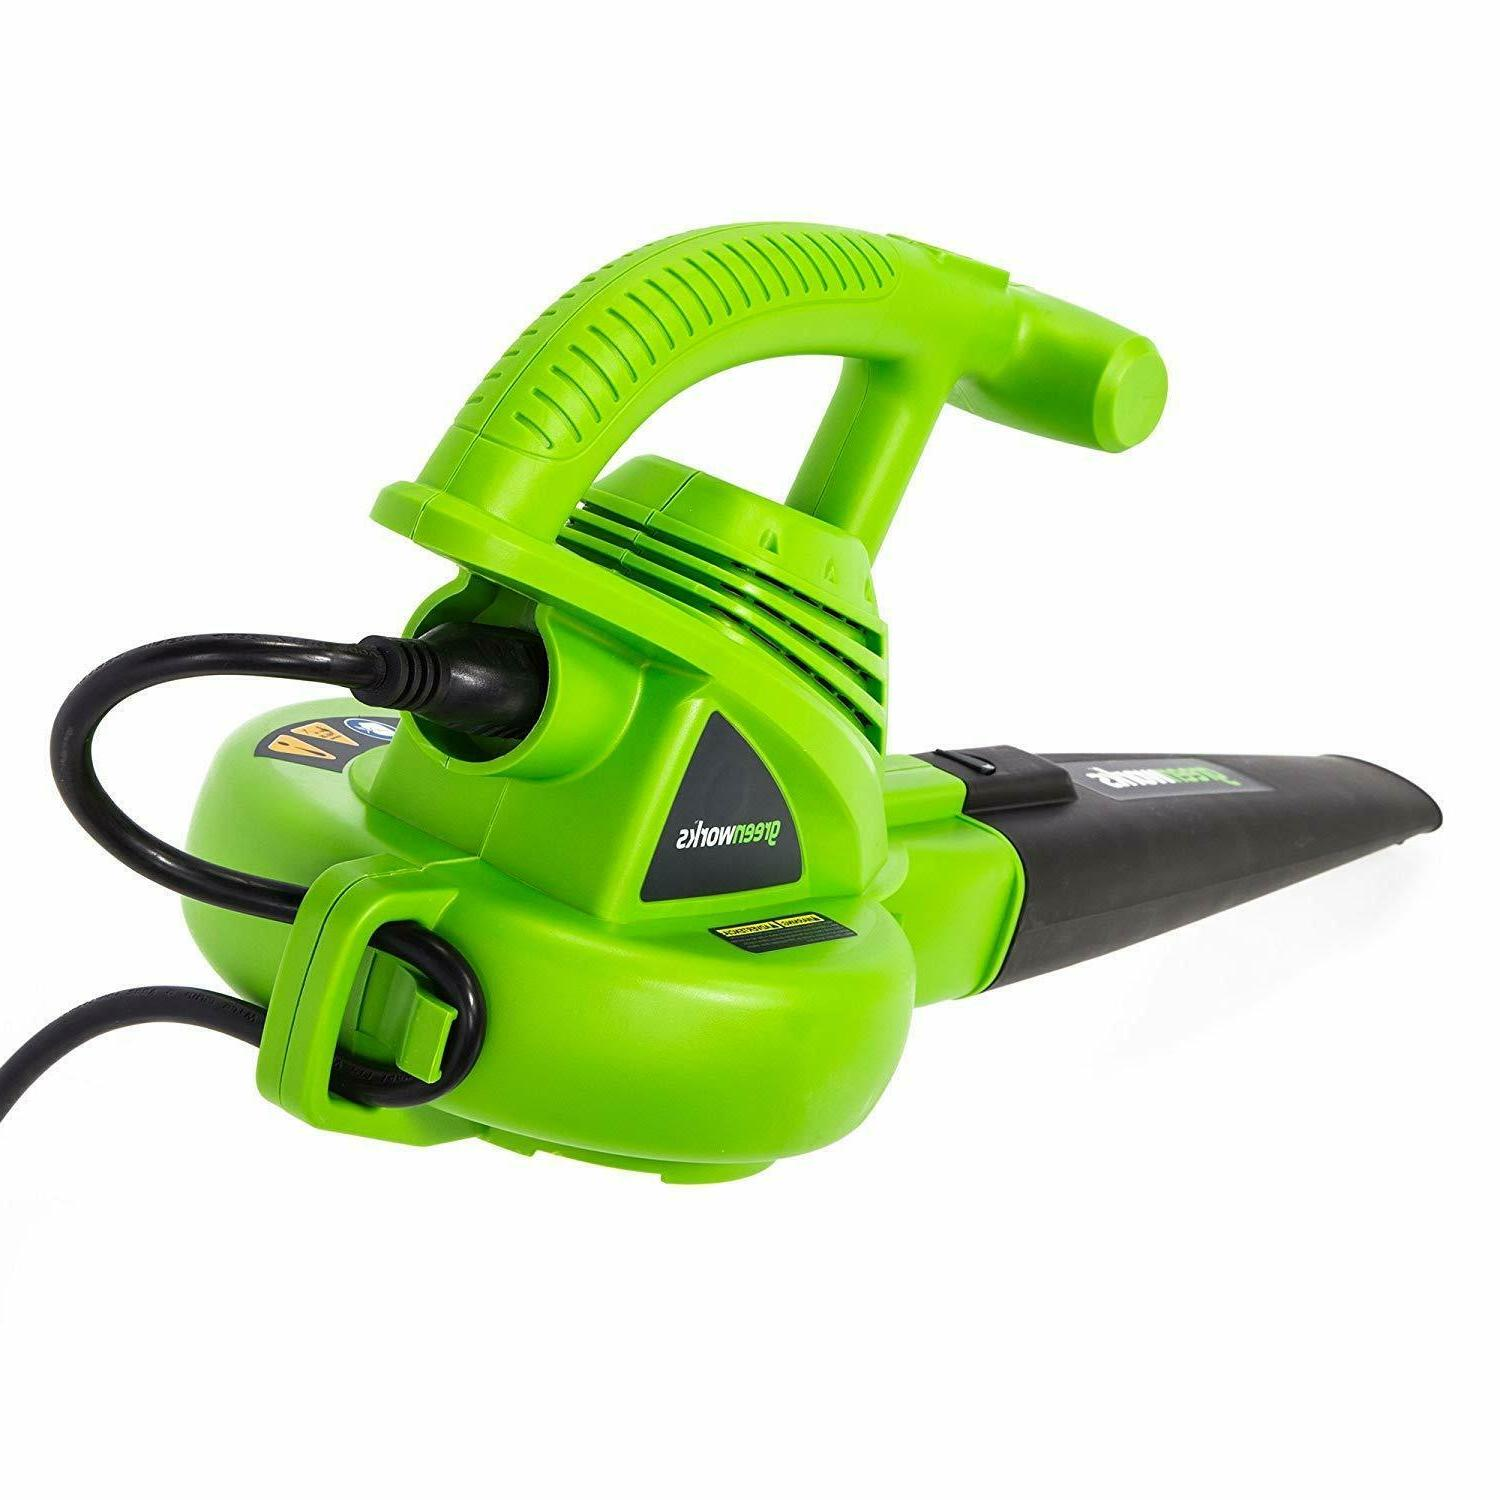 Greenworks Lawn Blower, Speed,